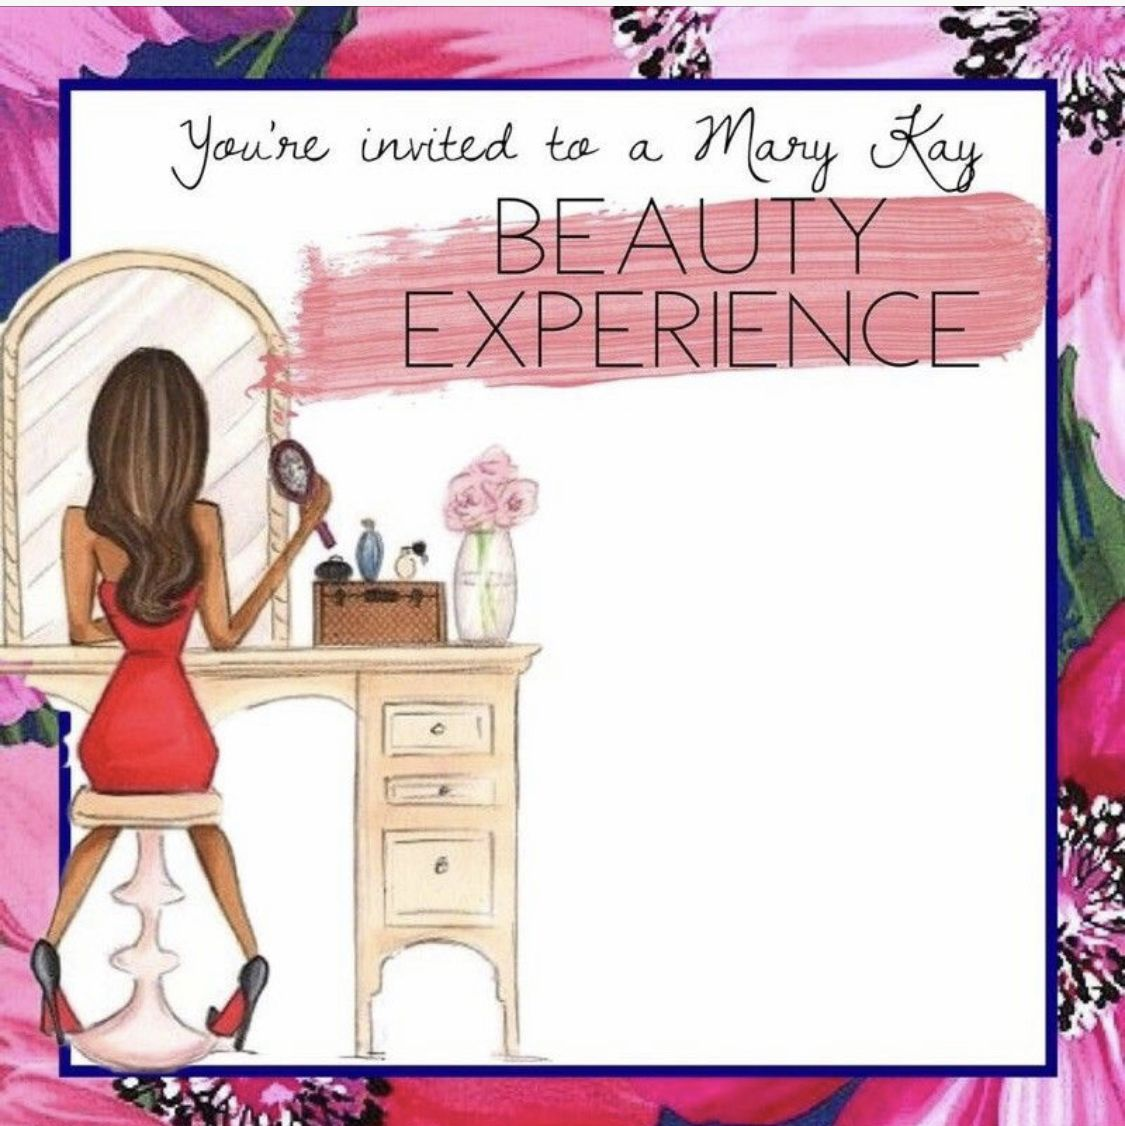 Pin By Angela Everett On Party Ideas: Pin By Angela Miller On Mary Kay (With Images)